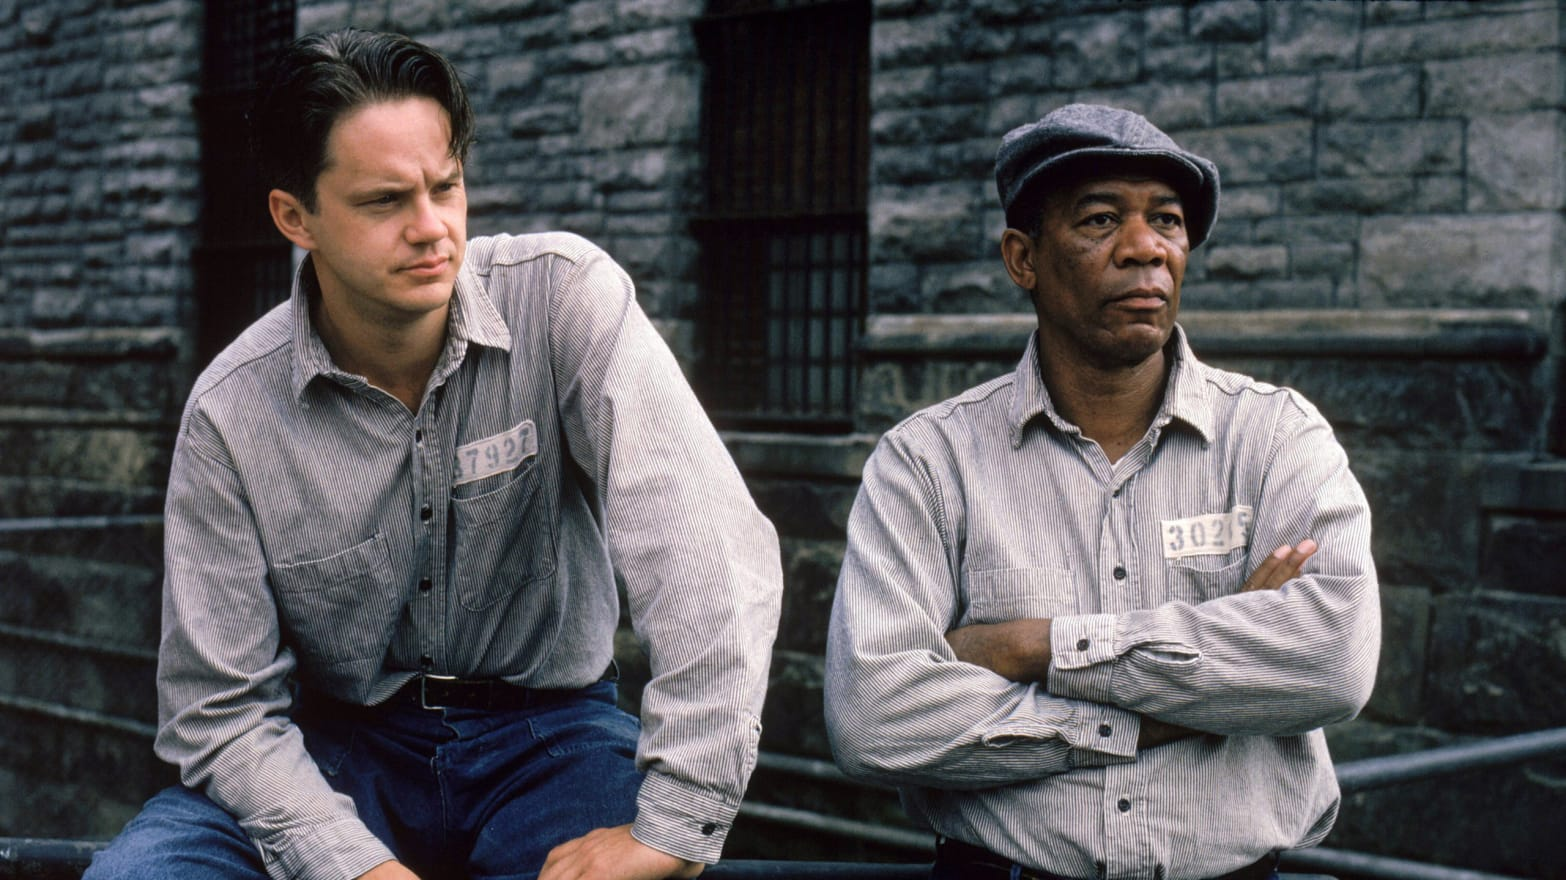 20 Things You Didn't Know About 'The Shawshank Redemption'